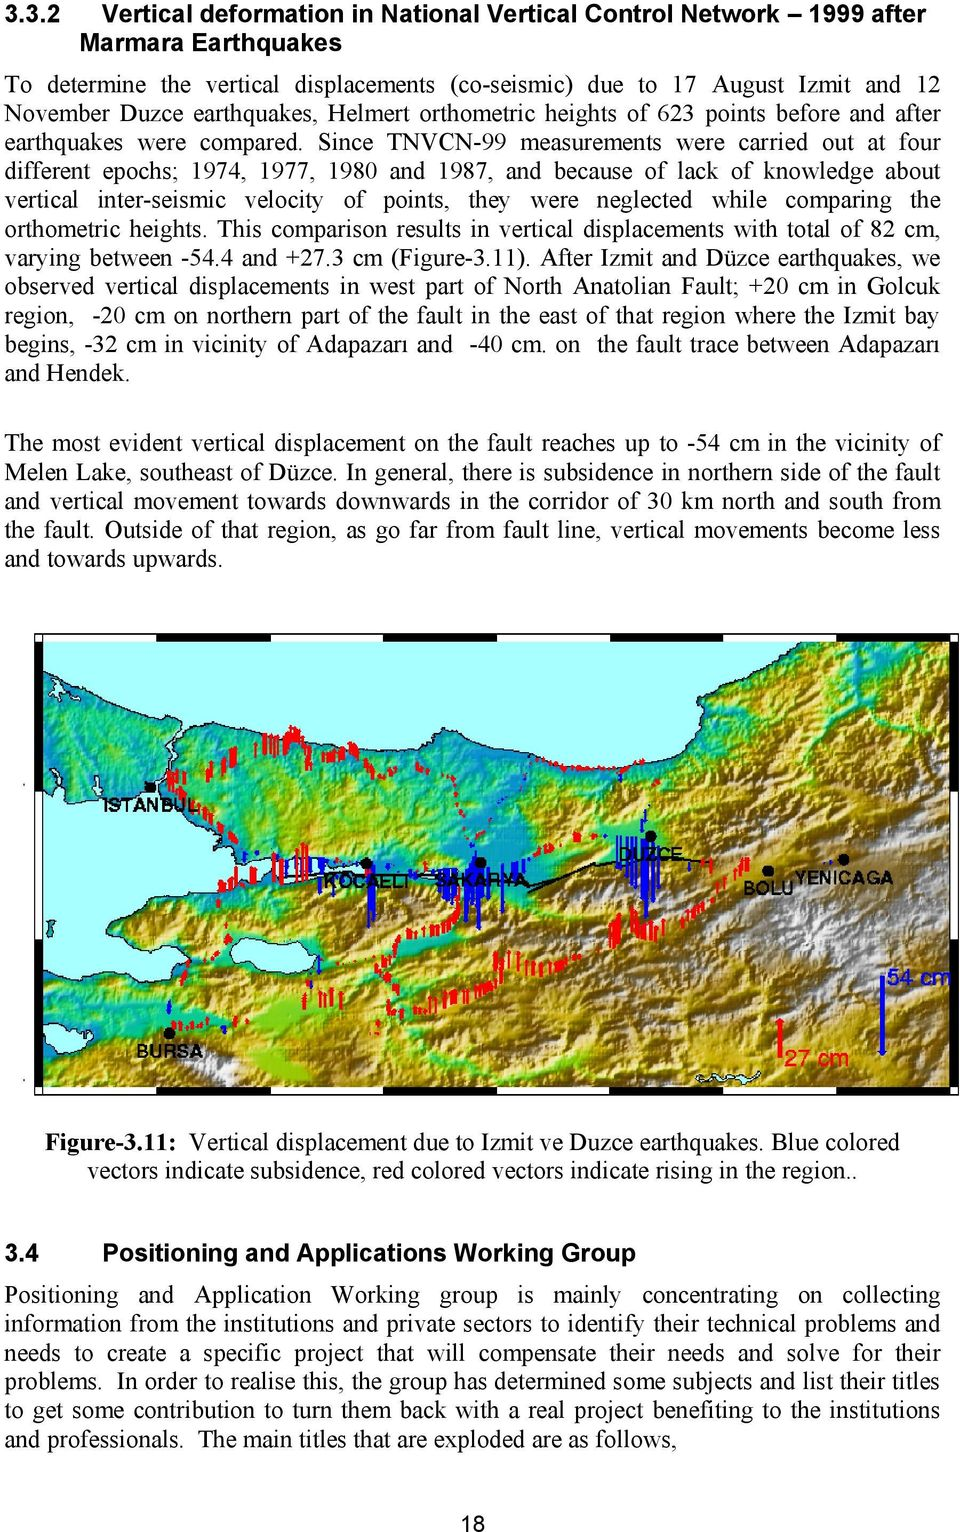 Since TNVCN-99 measurements were carried out at four different epochs; 1974, 1977, 1980 and 1987, and because of lack of knowledge about vertical inter-seismic velocity of points, they were neglected